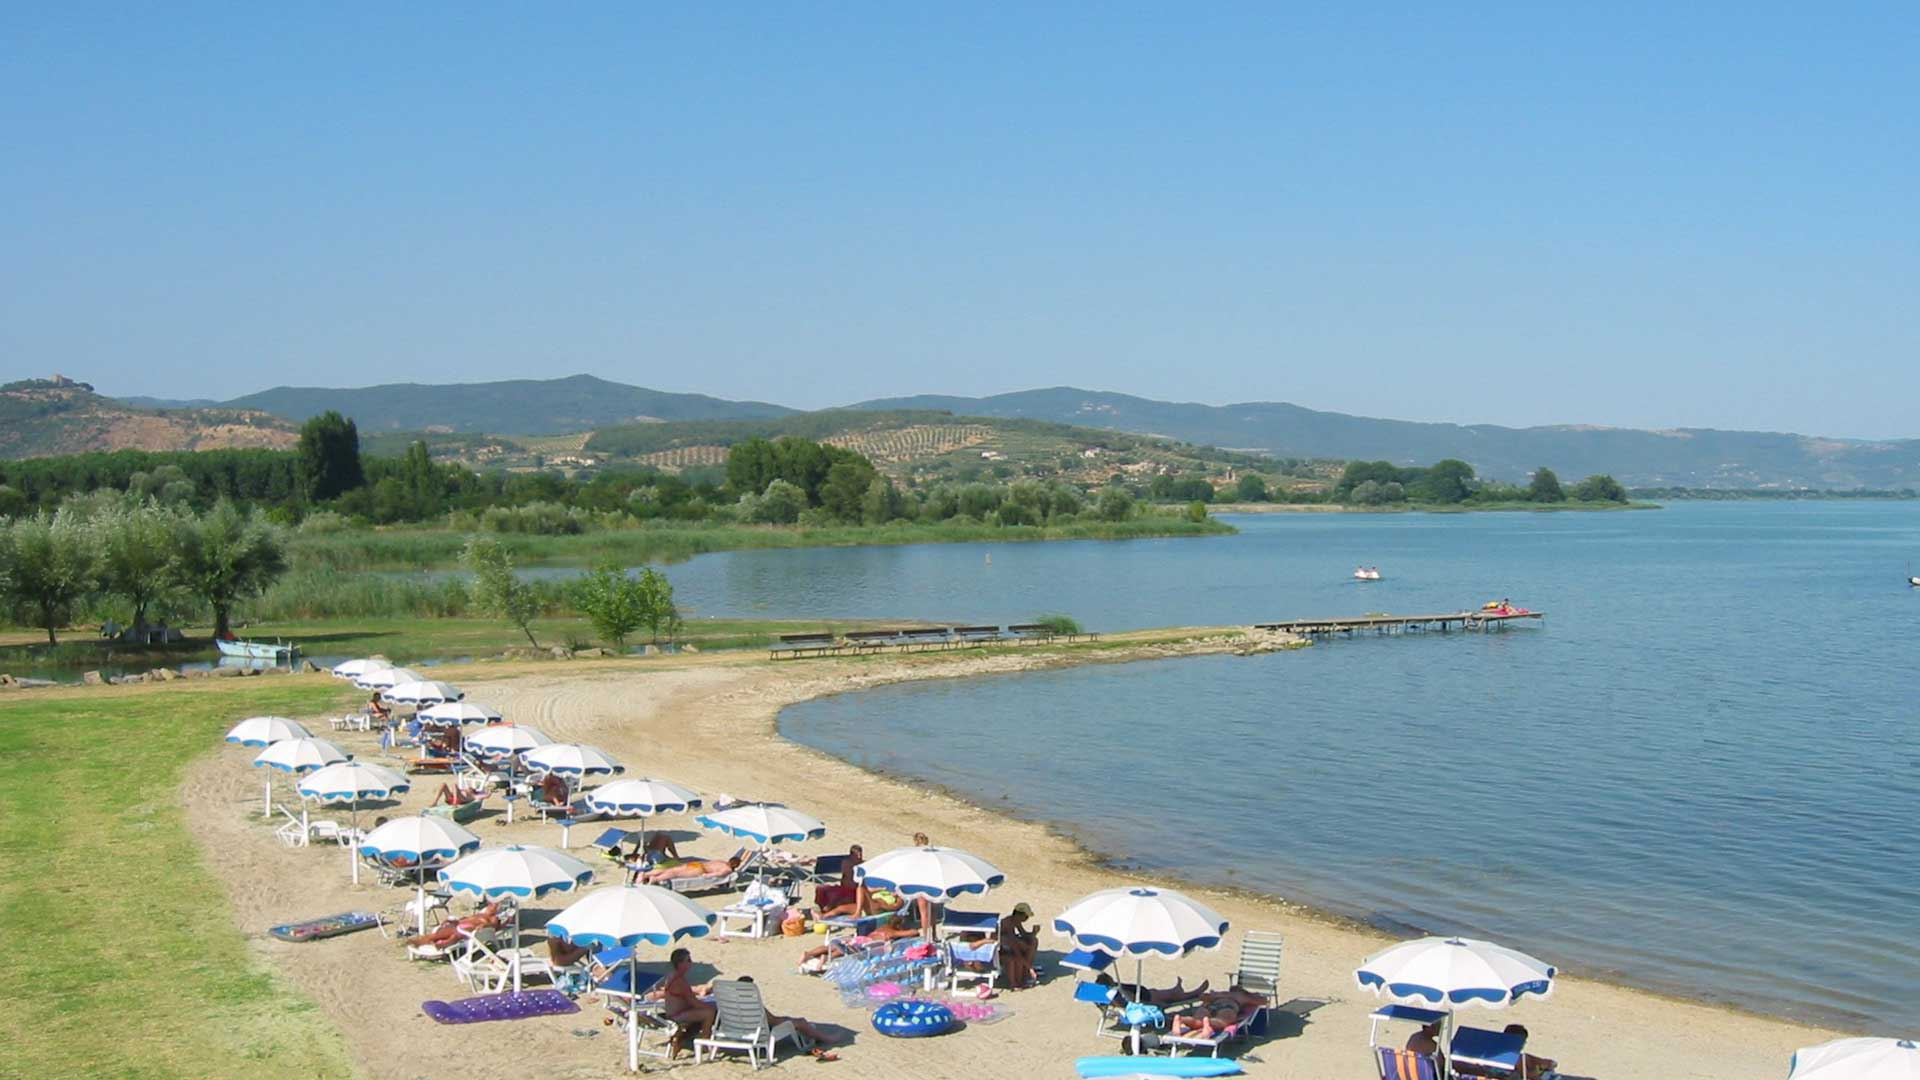 Sand beach at Badiaccia Camping Village